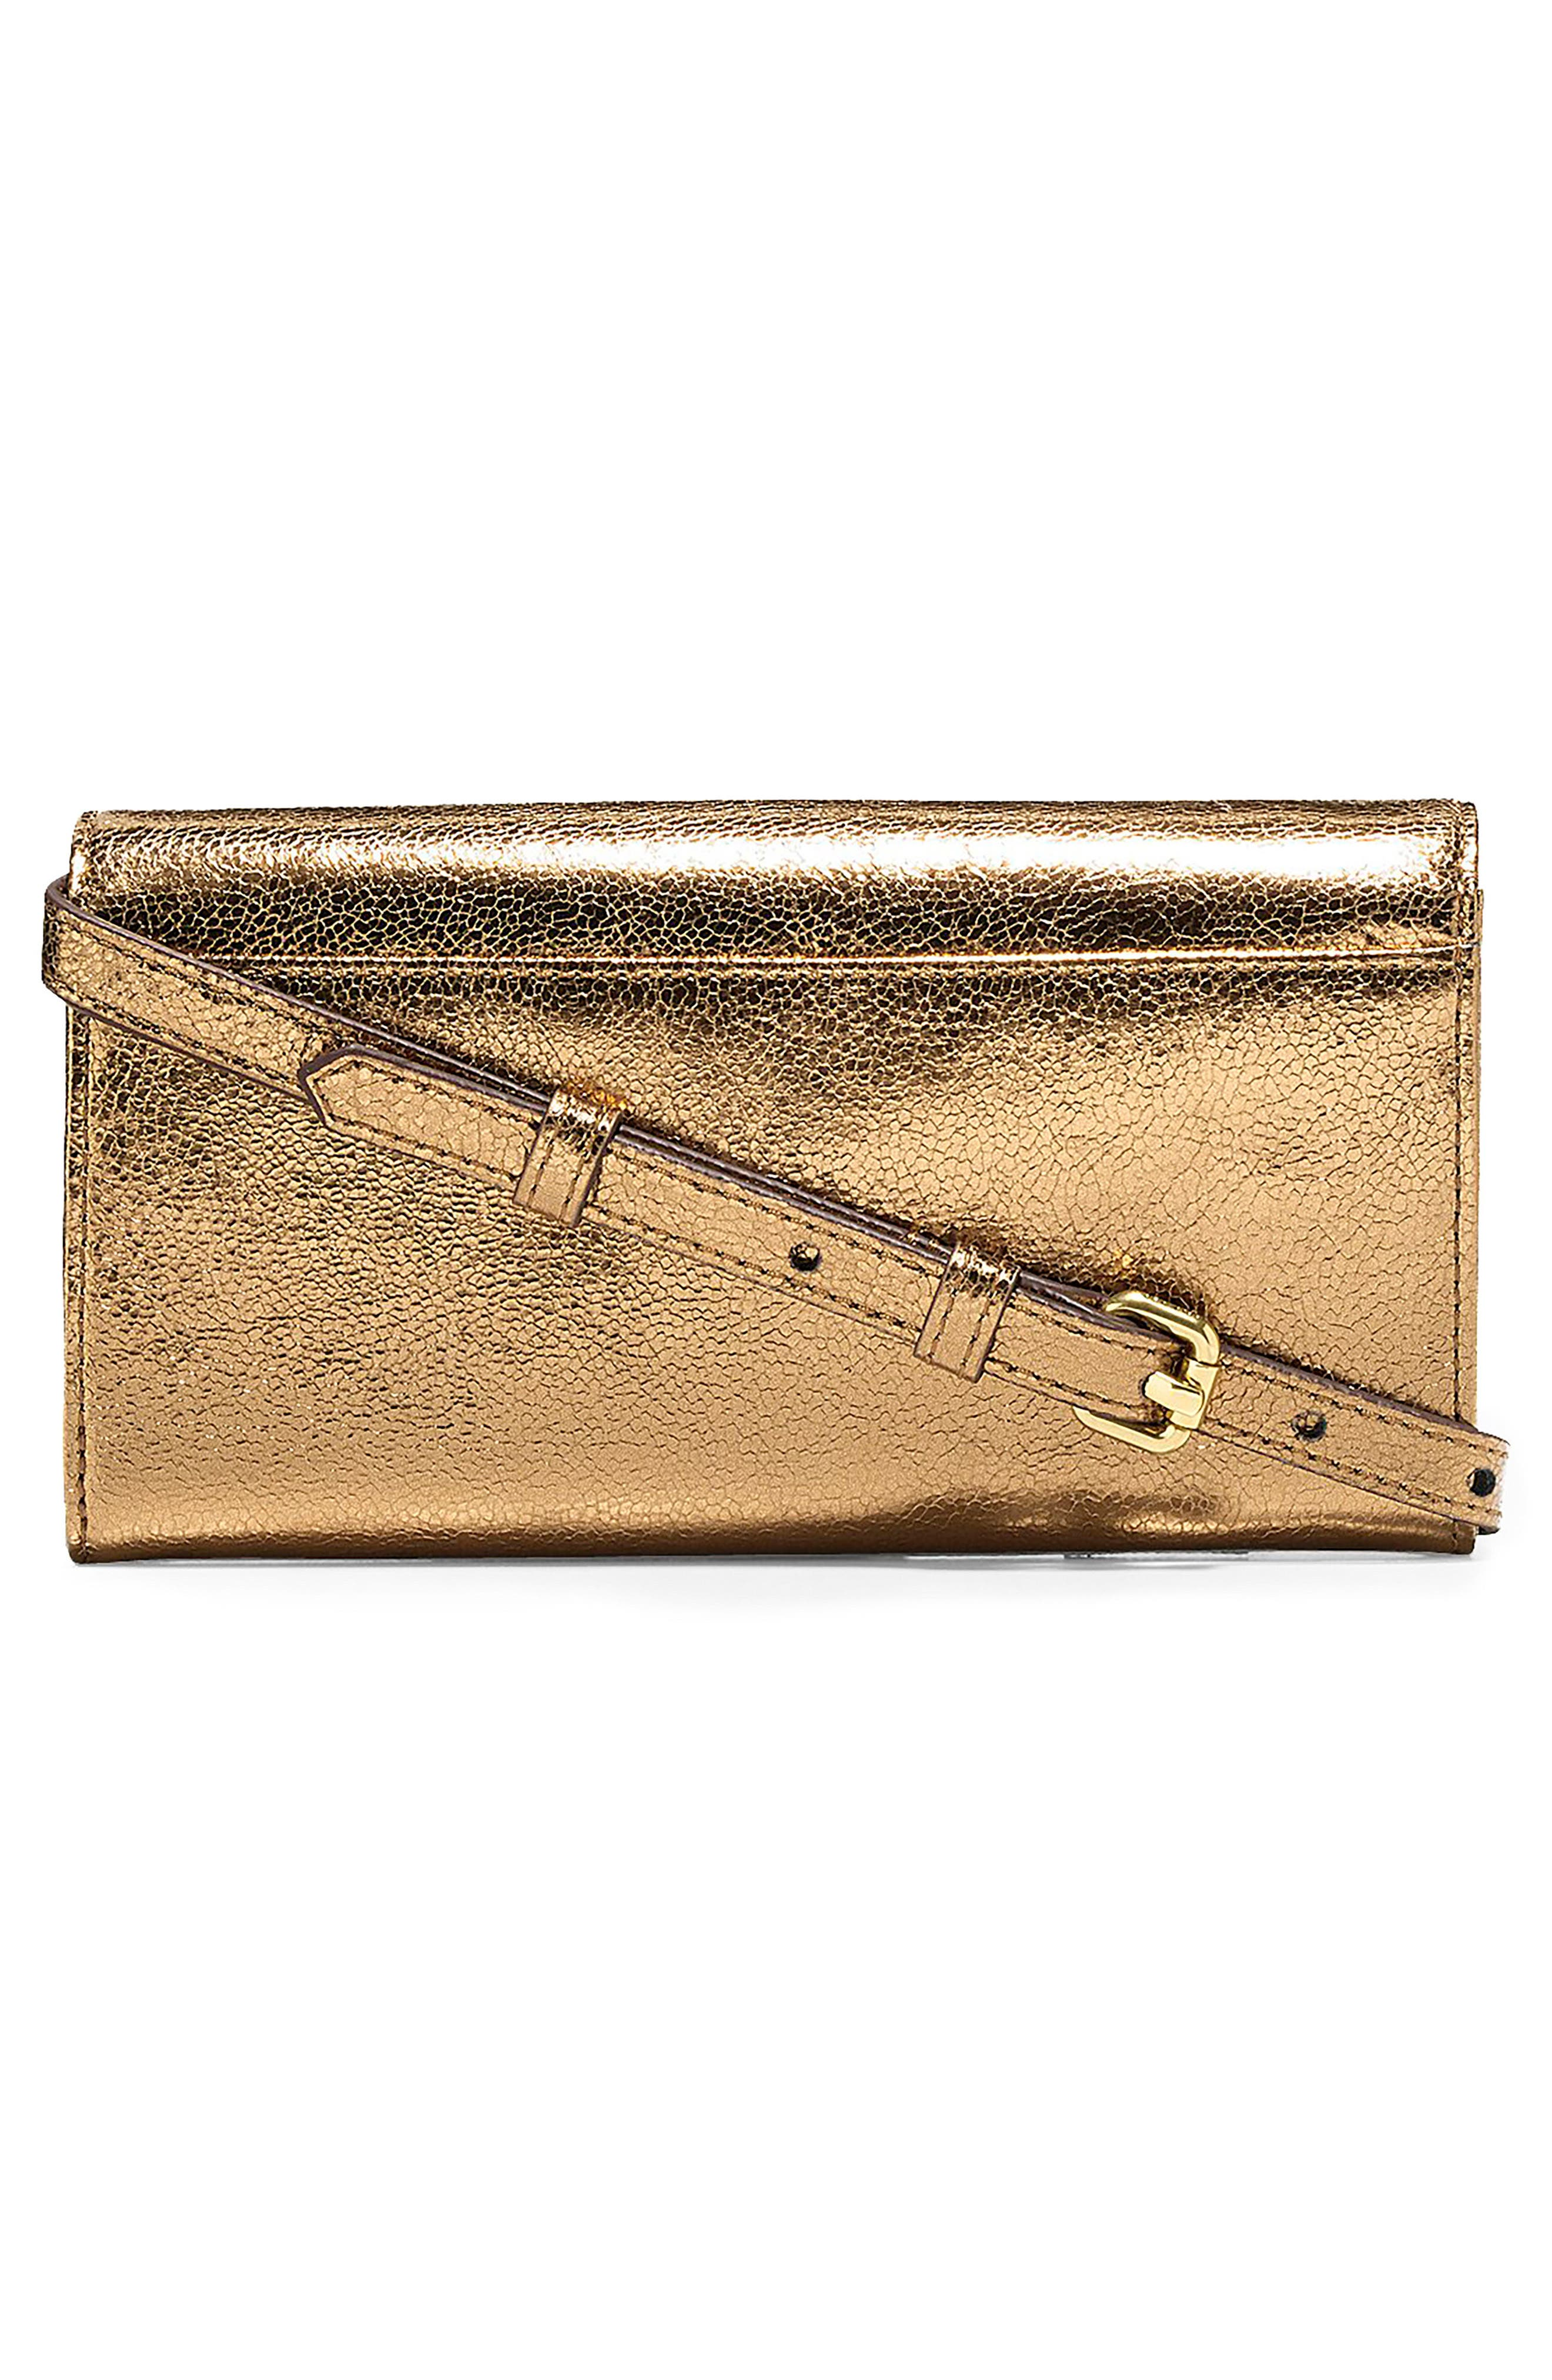 Marli Studded Metallic Leather Convertible Smartphone Clutch,                             Alternate thumbnail 4, color,